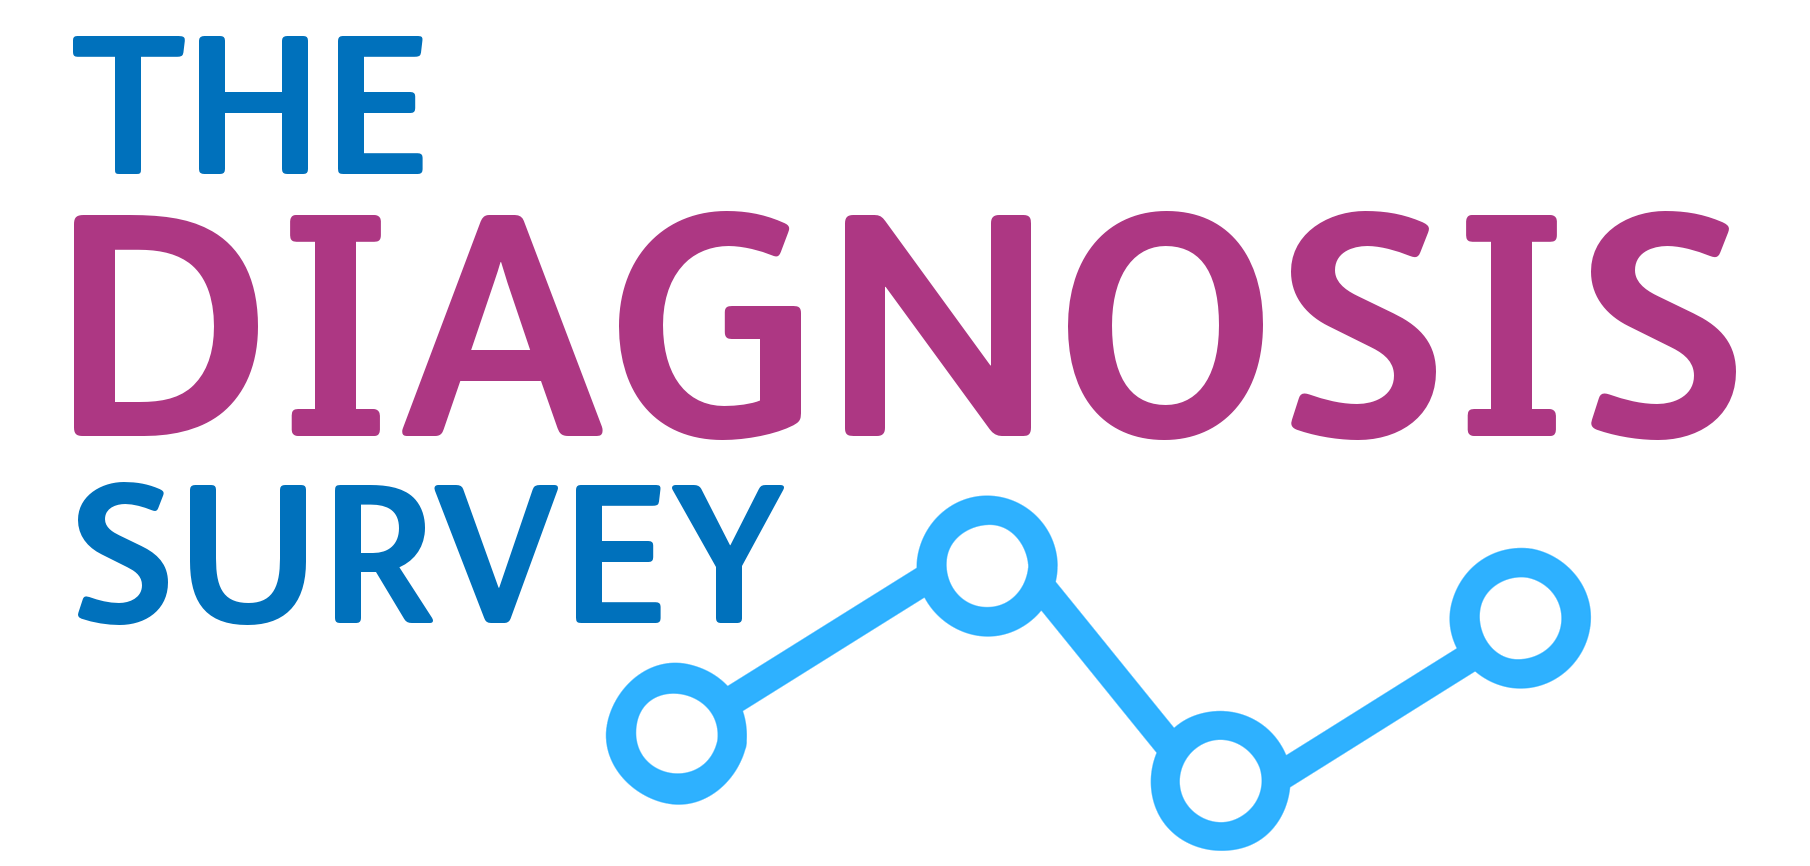 diagnosissurveylogo